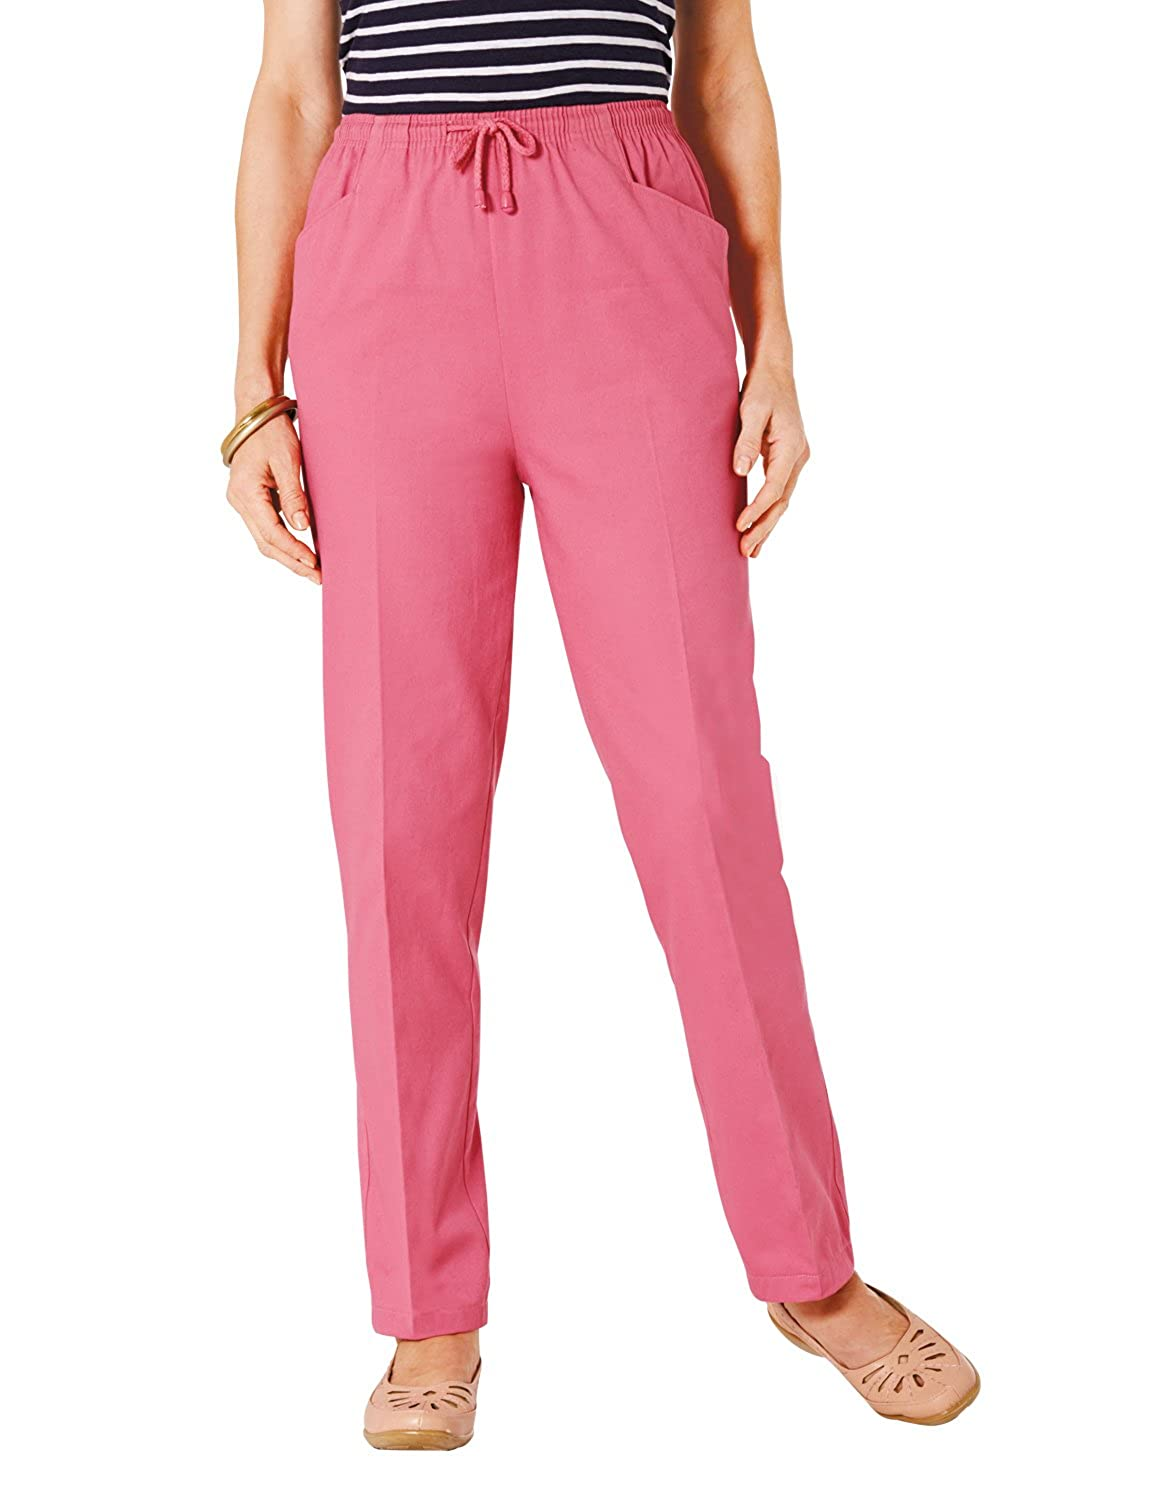 Ladies Womens Quality Cotton Trousers With Drawcord Chums